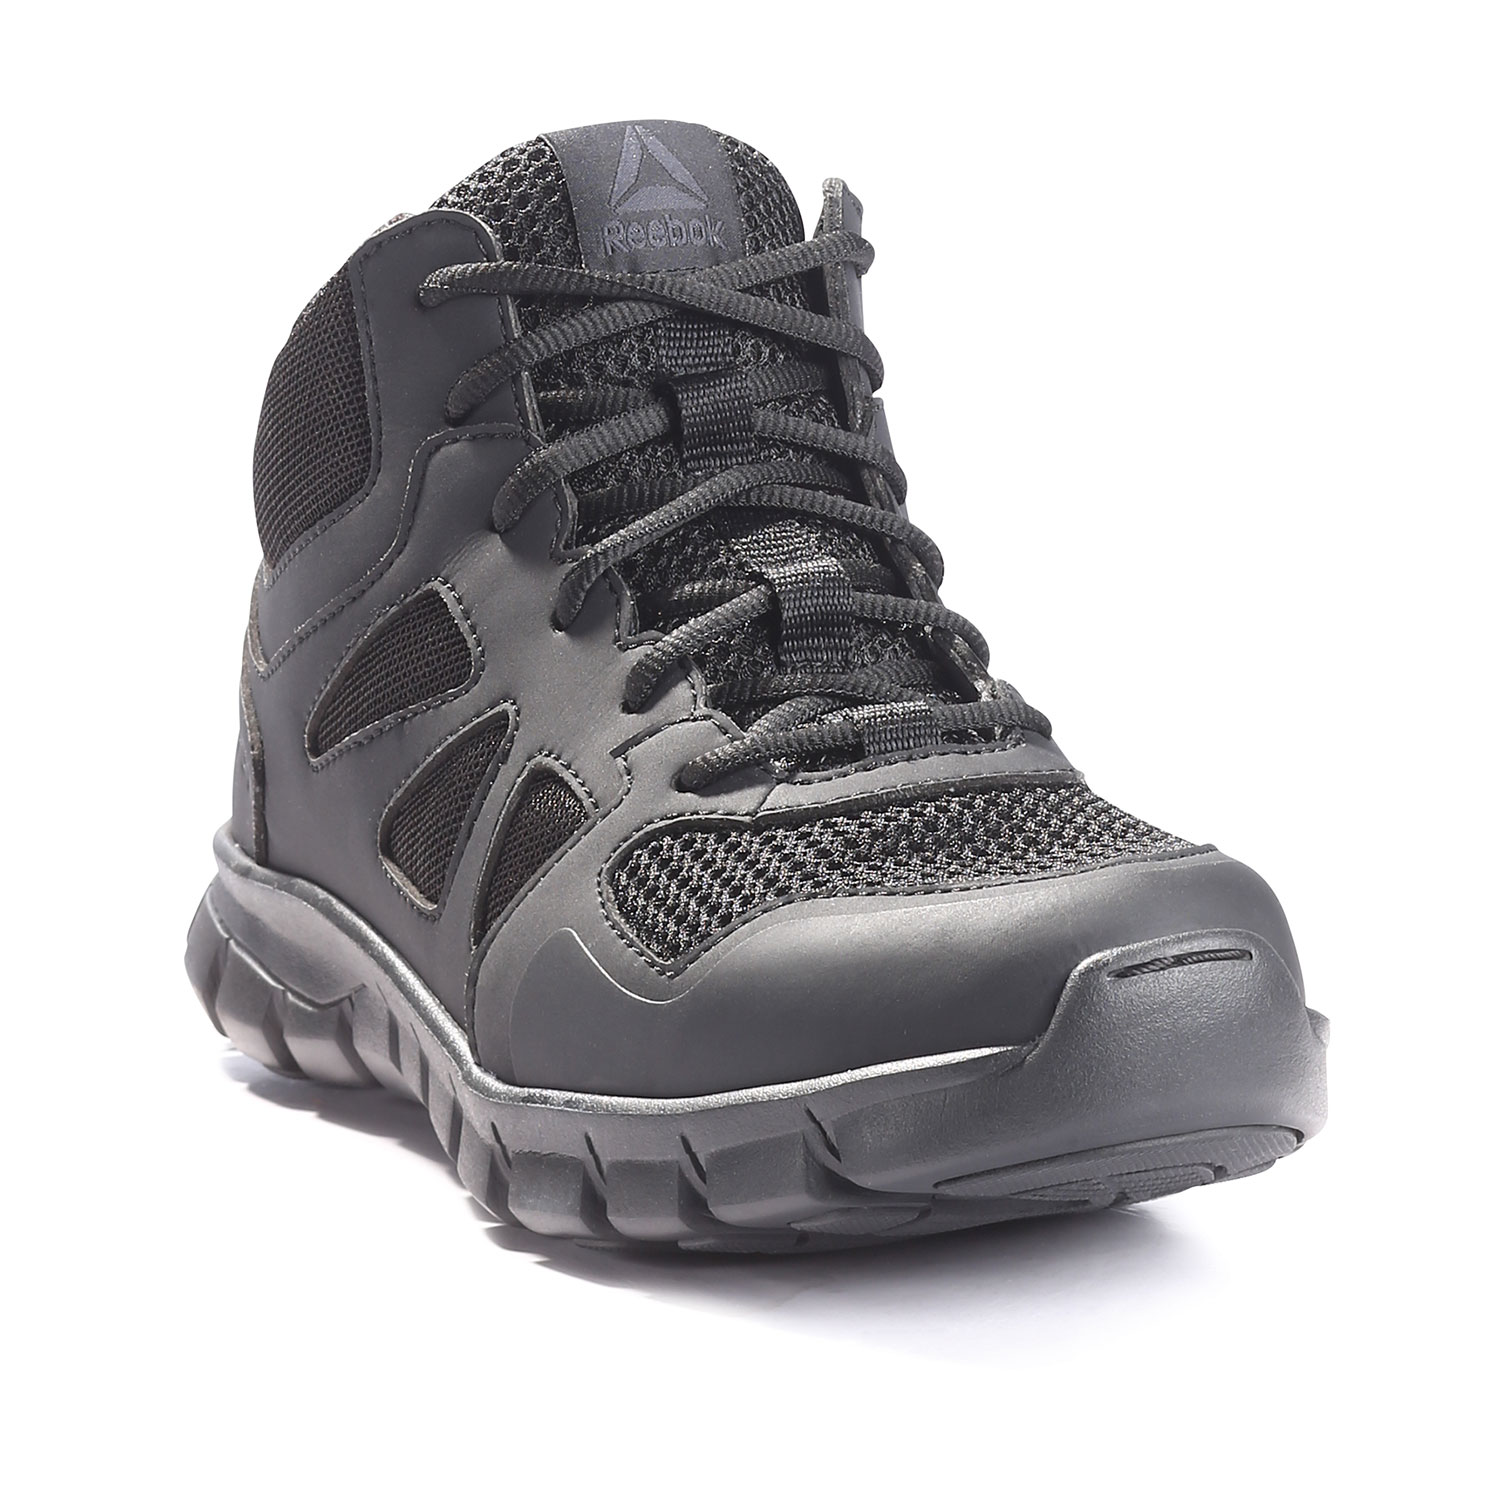 47a453575b92 Reebok Women s Sublite Cushion Tactical Mid